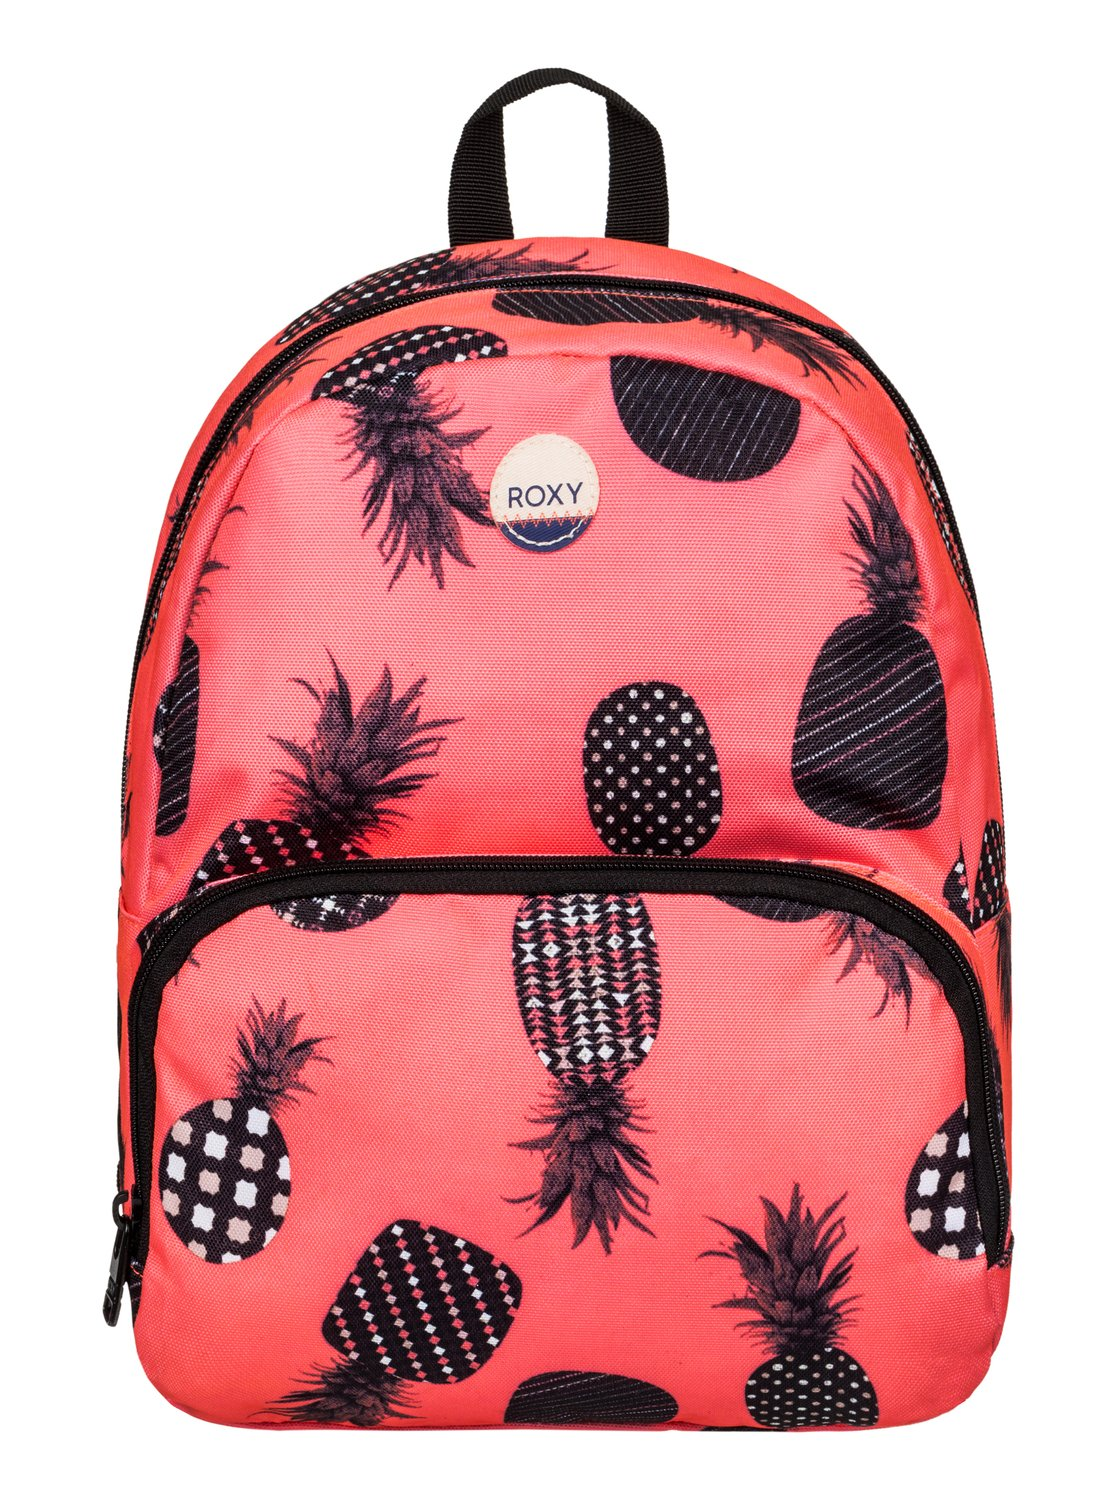 227268f680 Vs Pink Small Backpack- Fenix Toulouse Handball